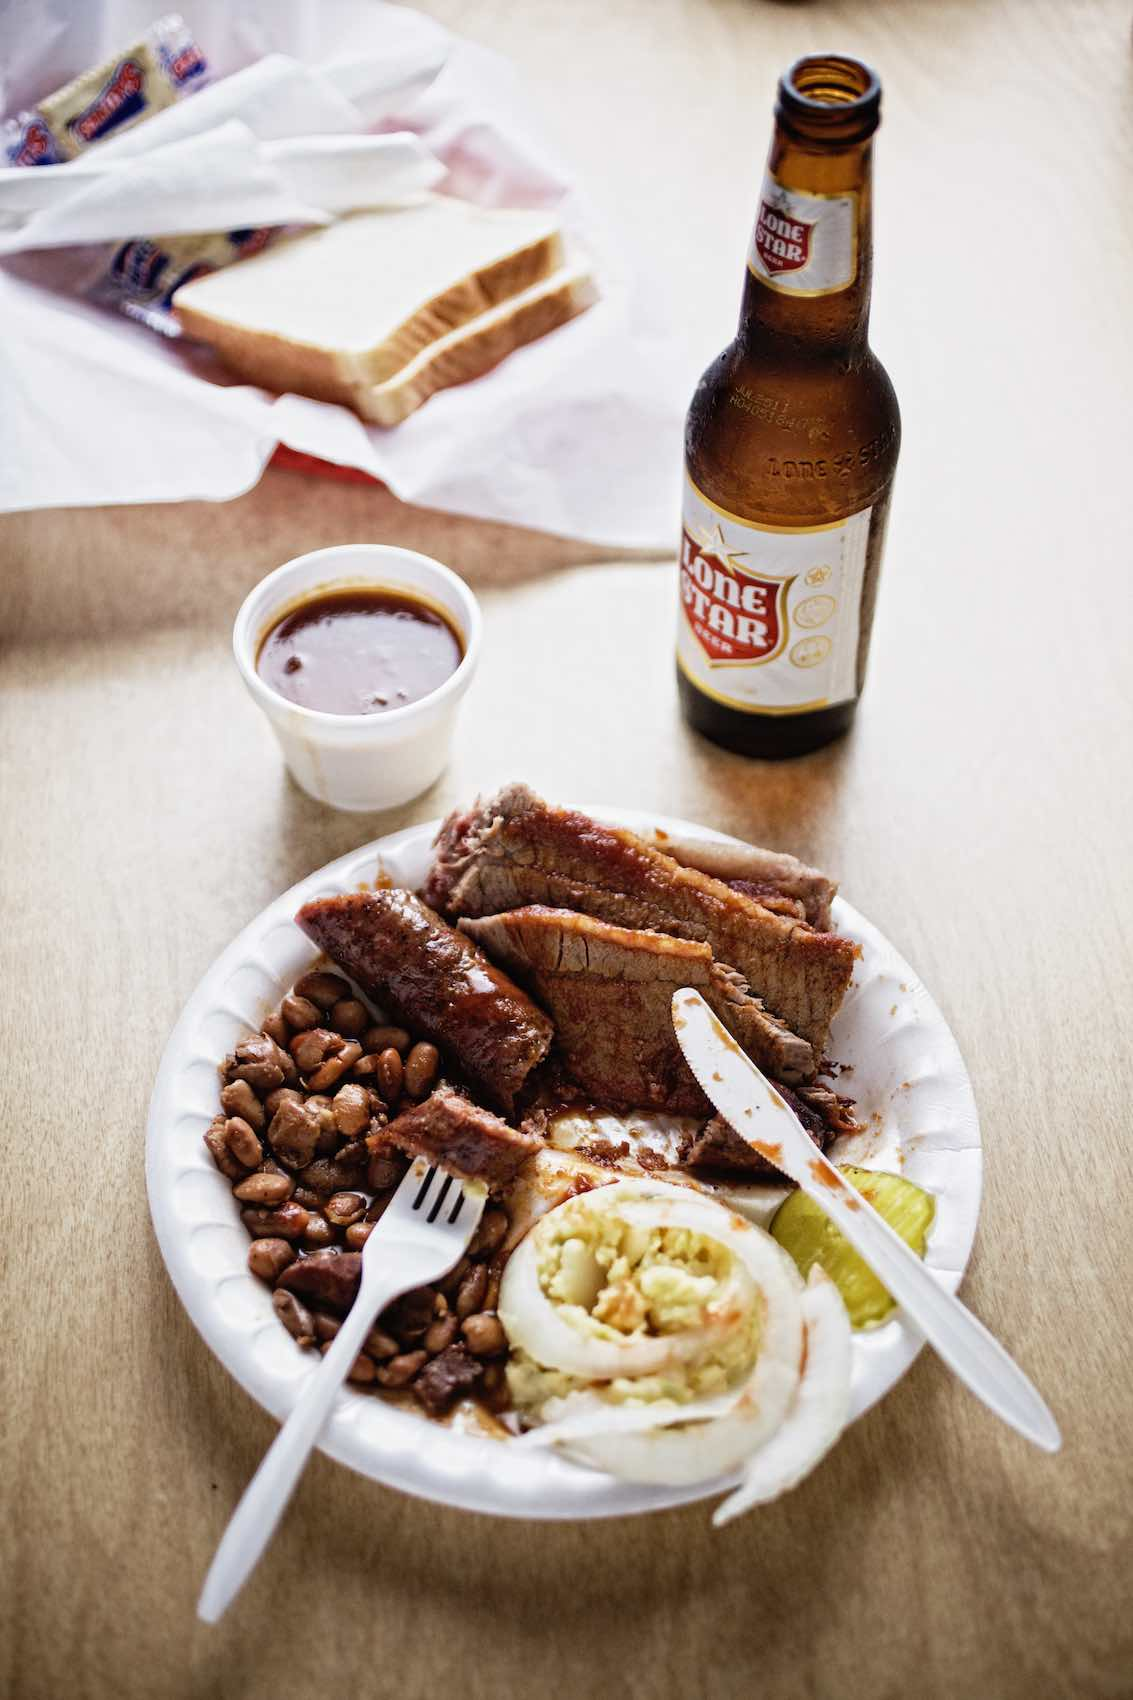 Jody Horton Photography - Barbecue plate and bottled Lonestar Beer.